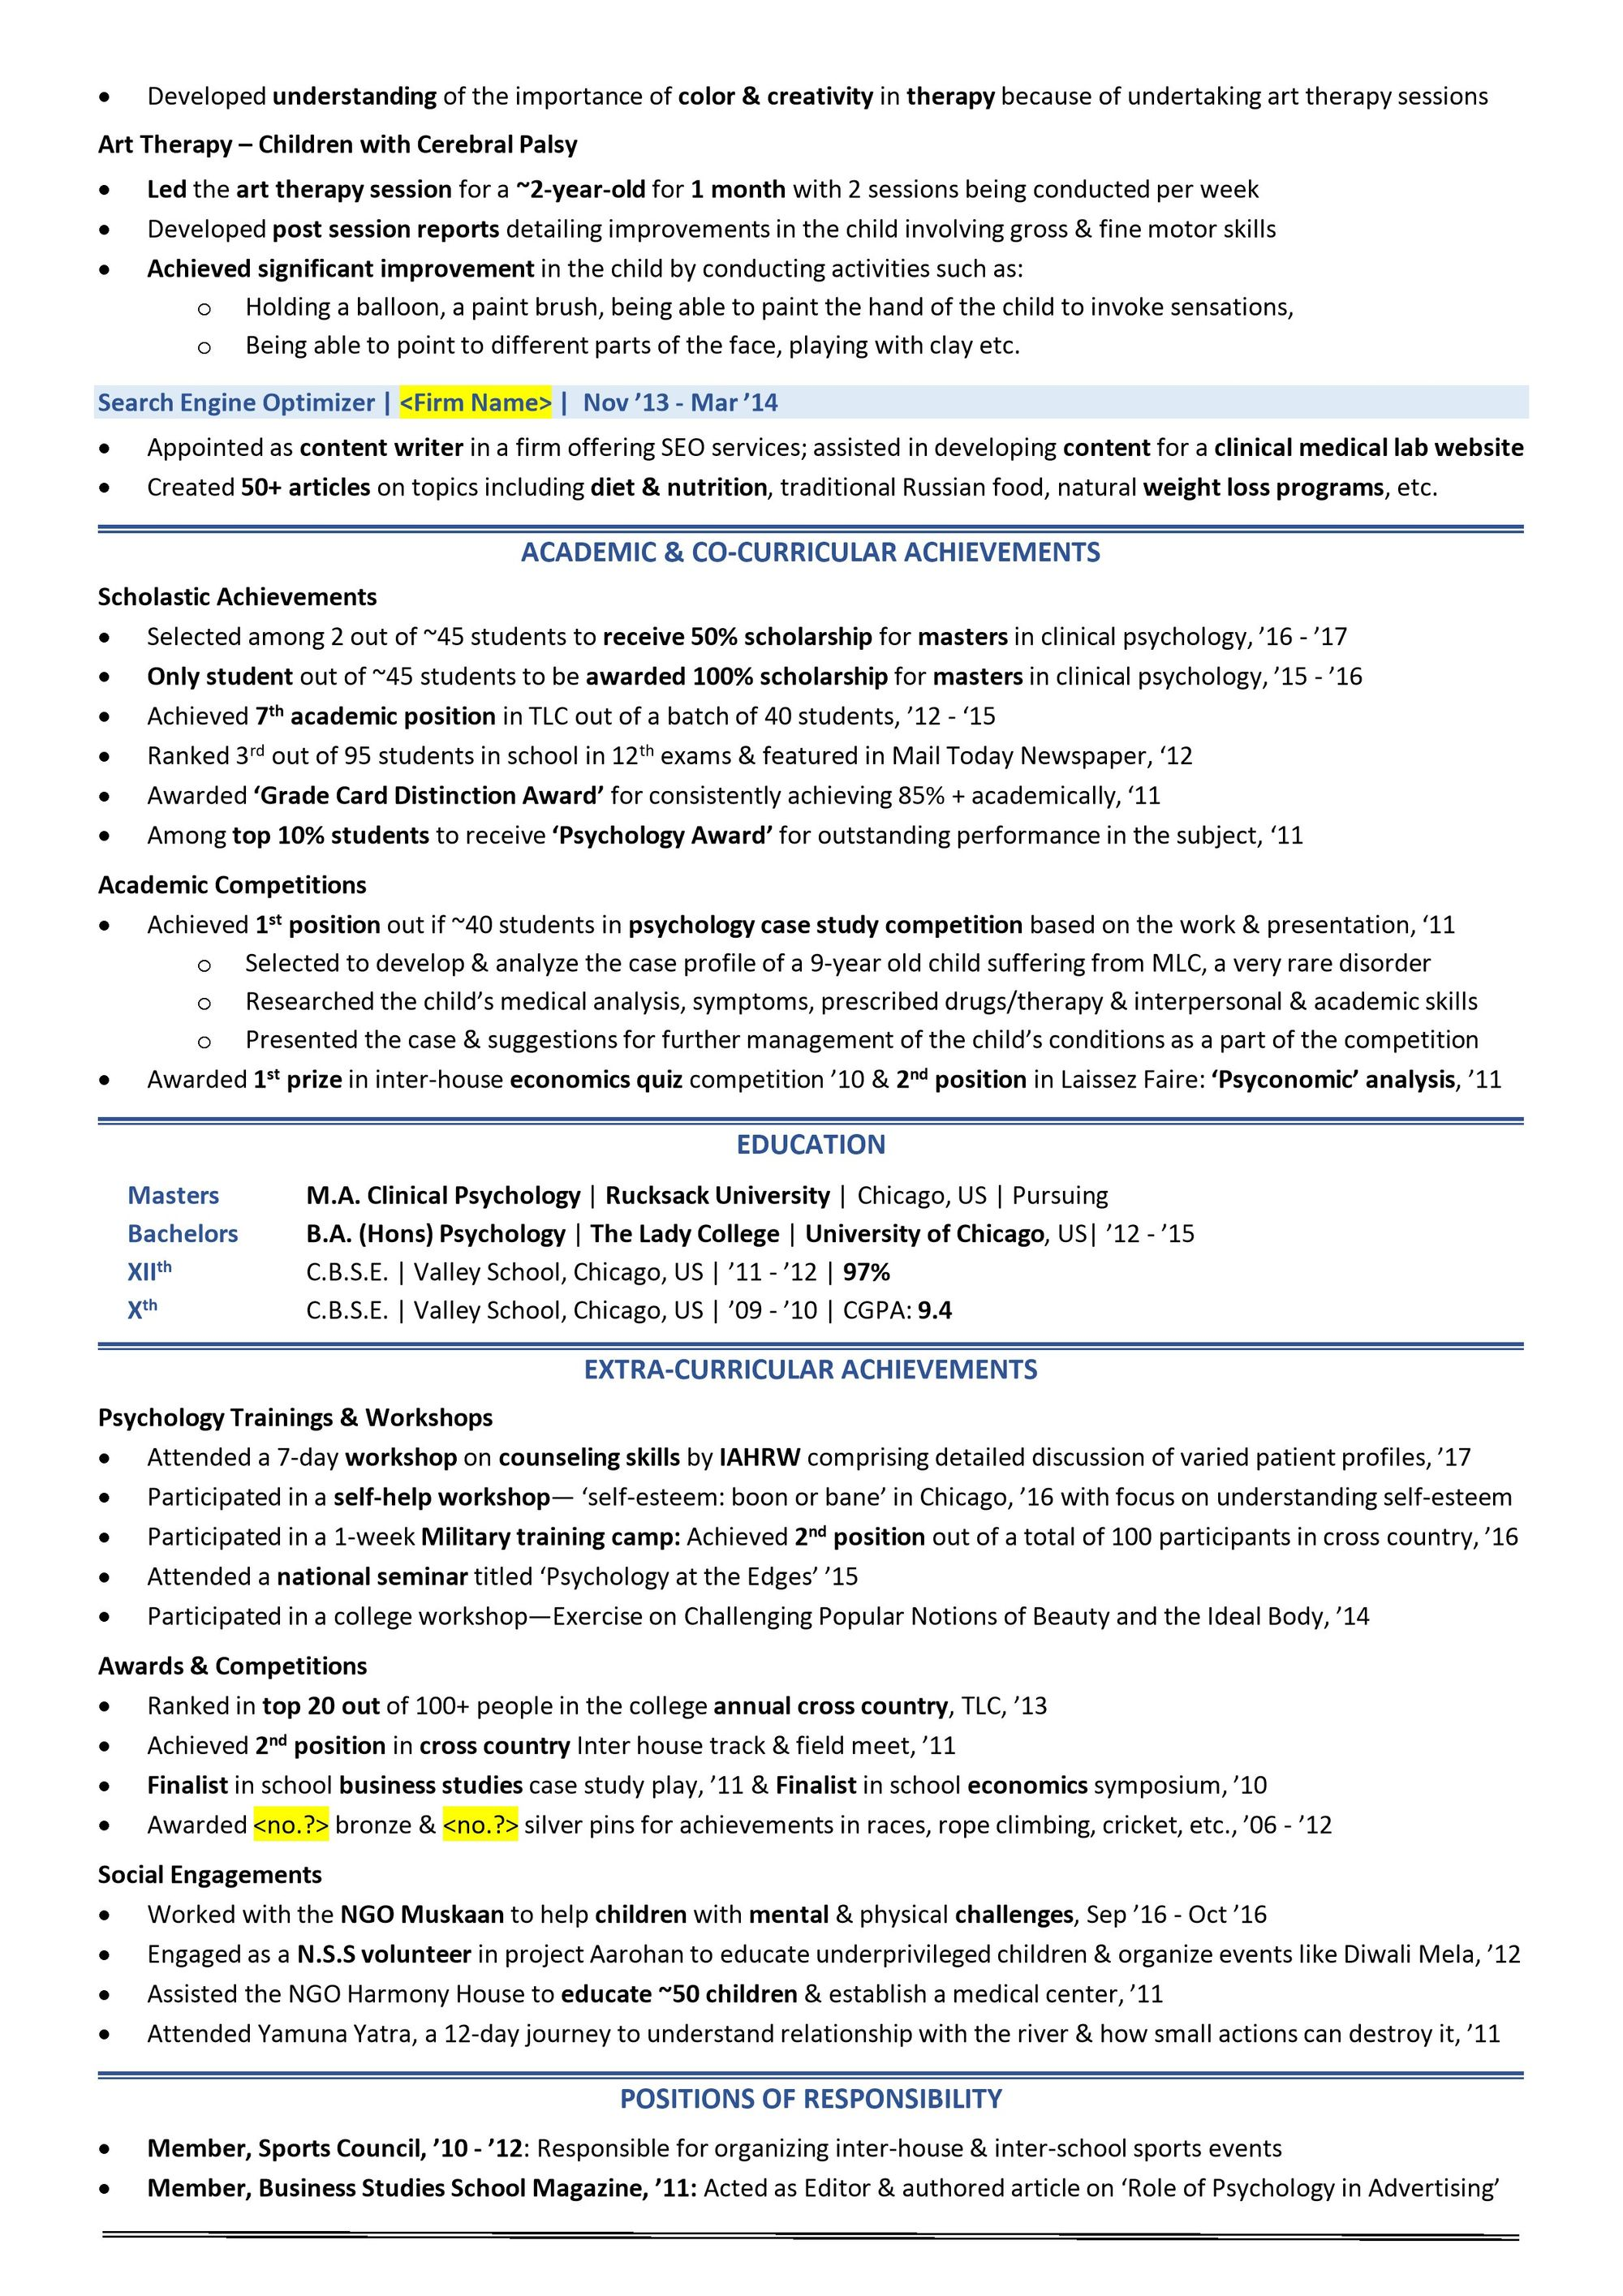 Scholarship Resume [2020 Guide with Scholarship Examples ...